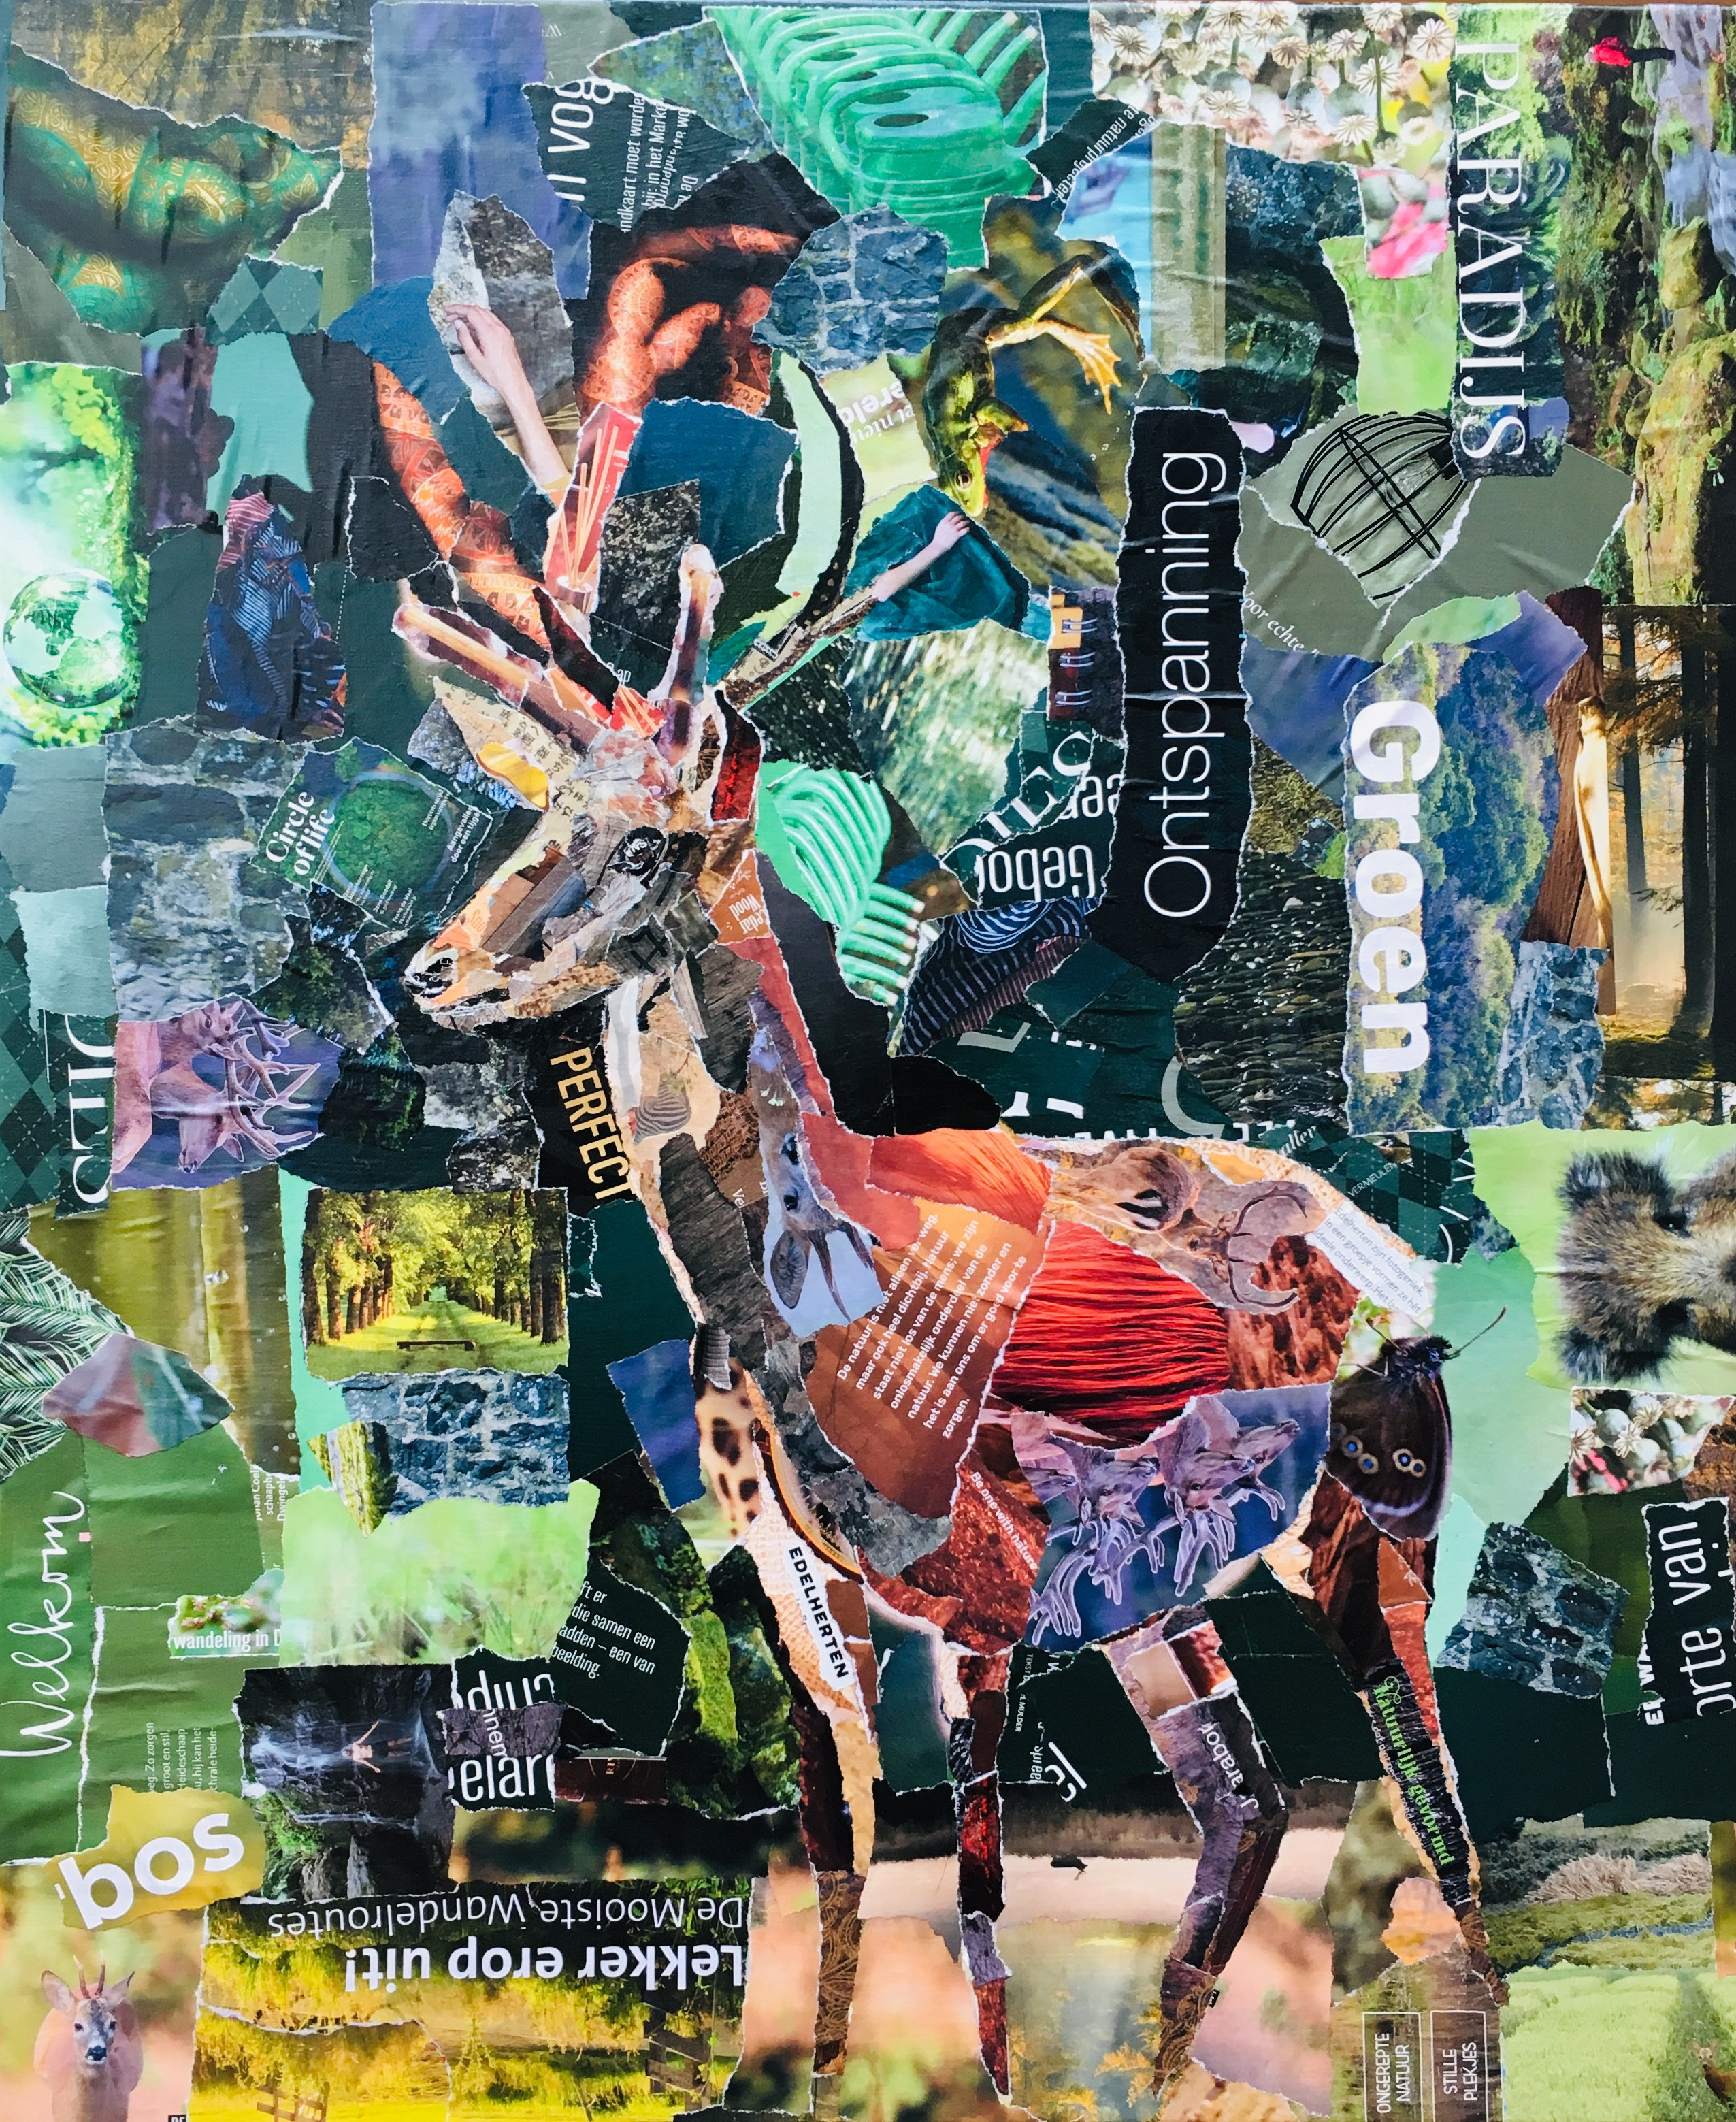 Edelhert - € 650,- Collage (50 x 60)